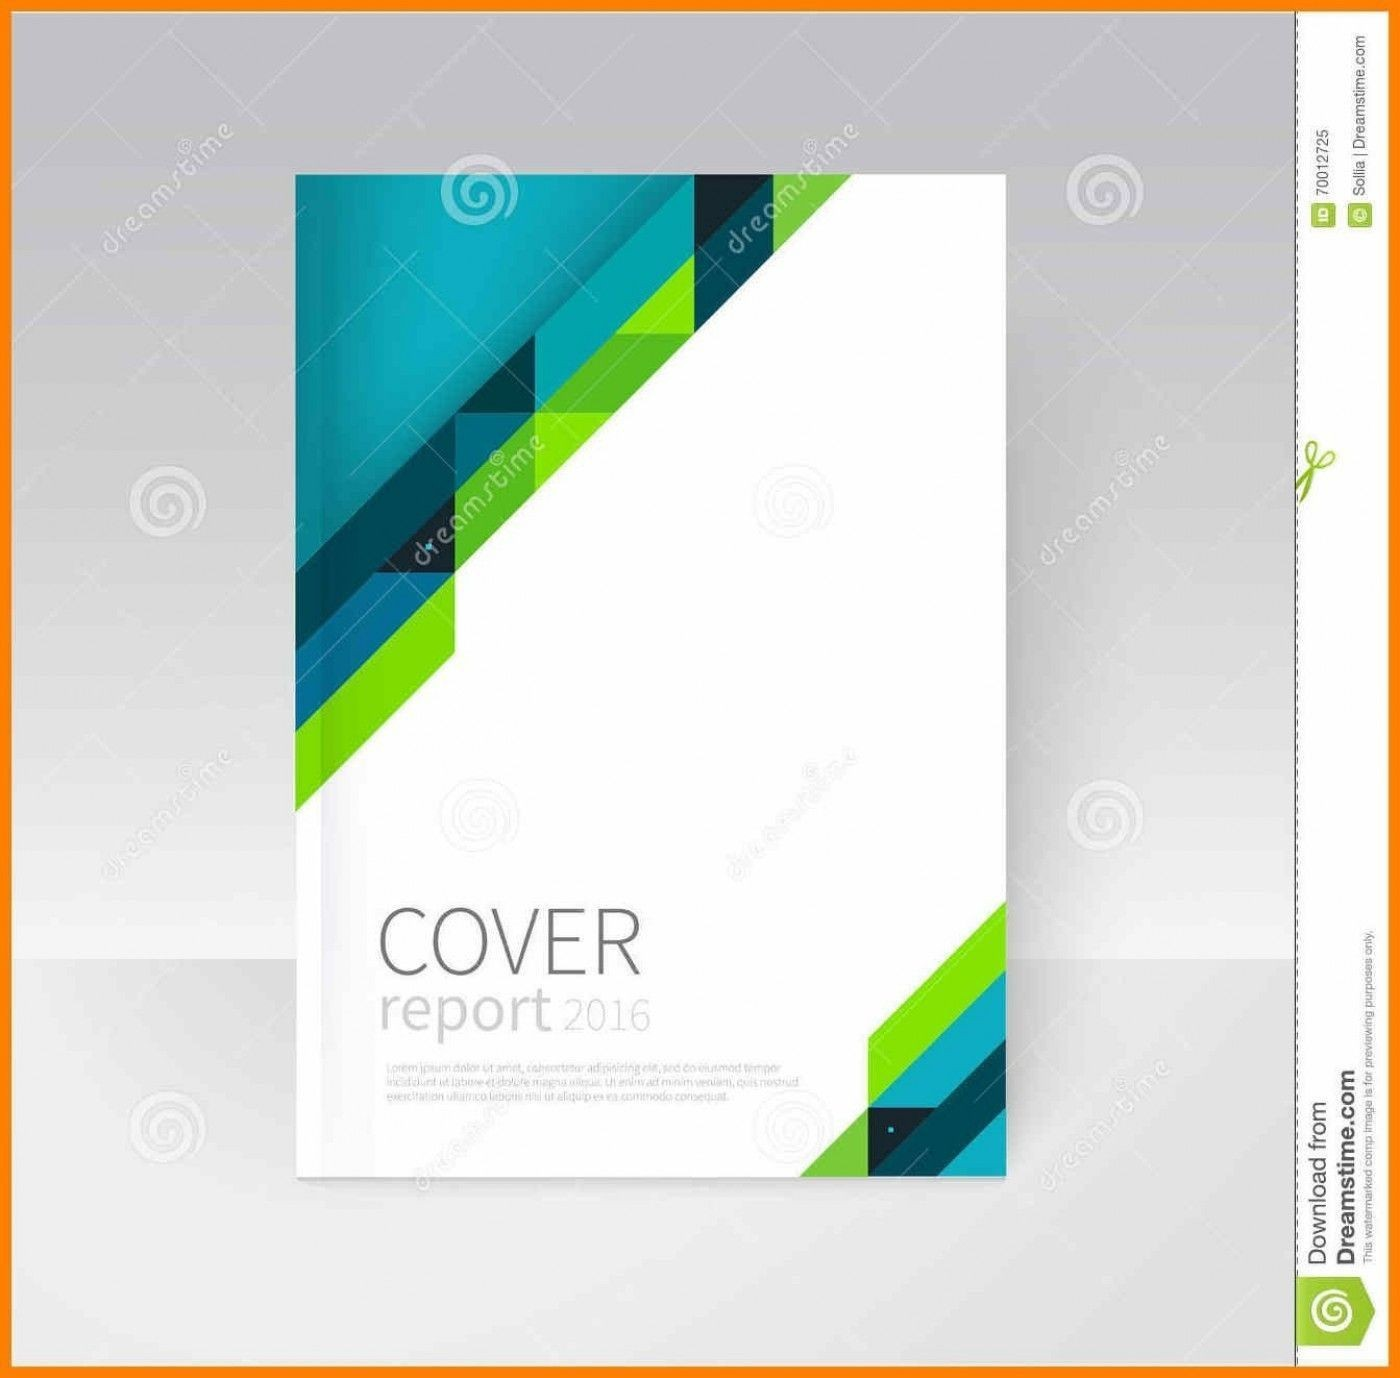 008 Beautiful Free Download Annual Report Cover Design Template Picture  Page In Word1400